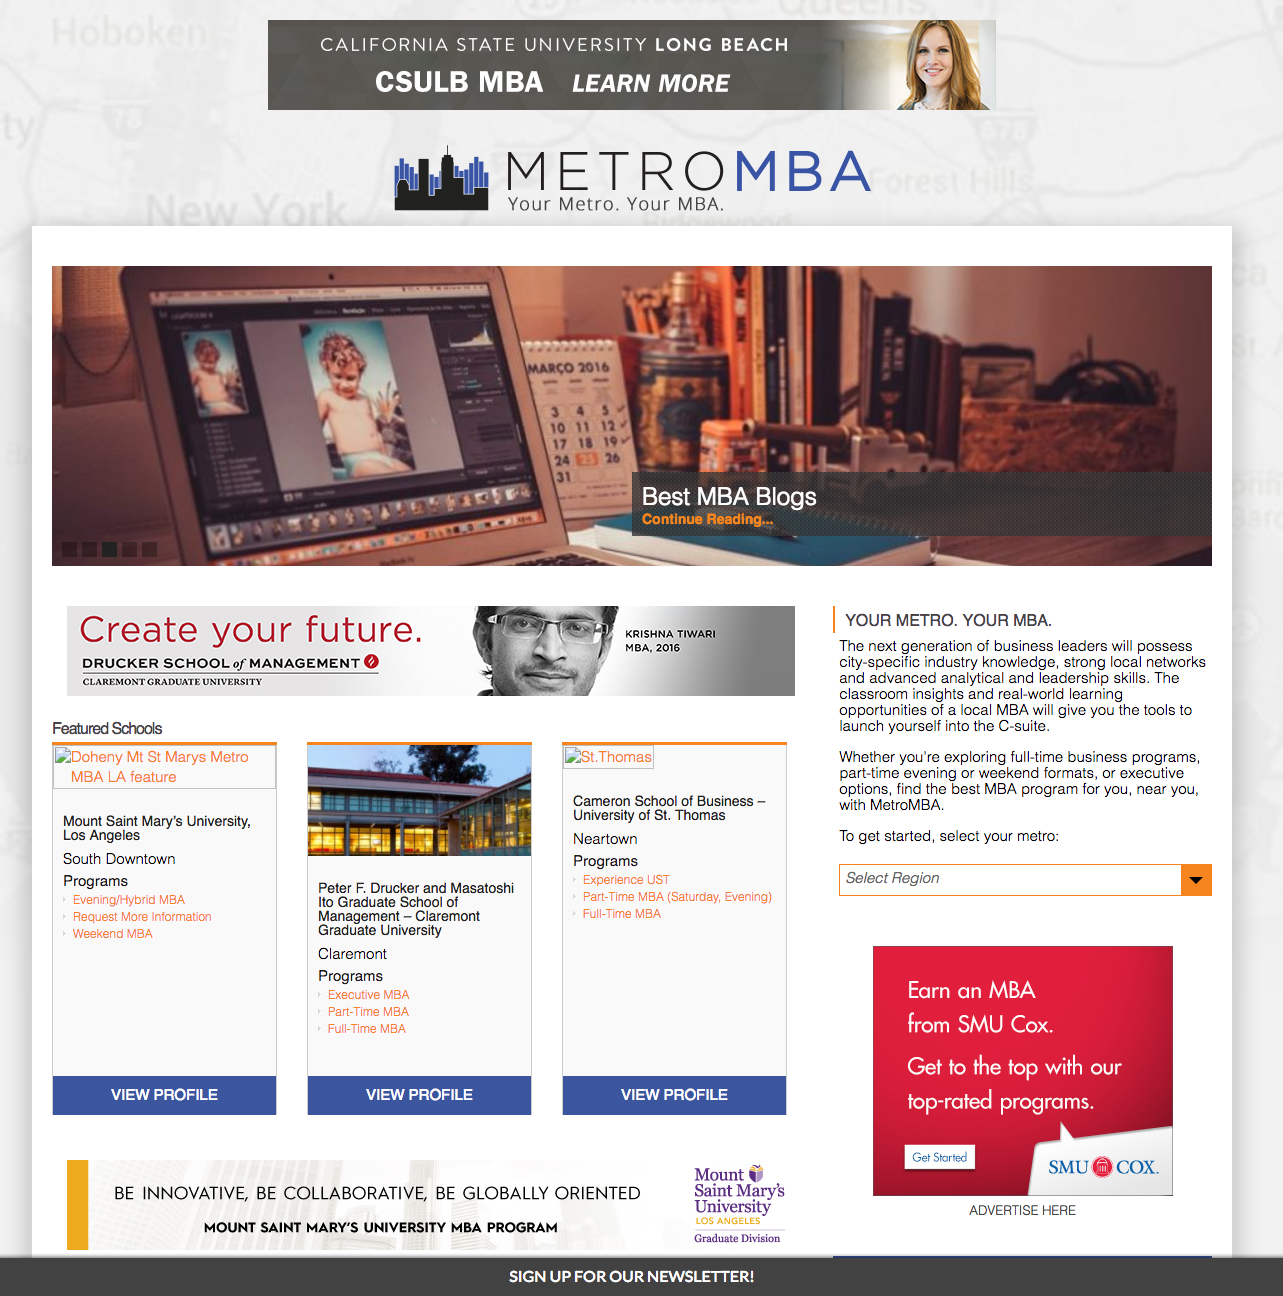 Ongoing work on metromba.com